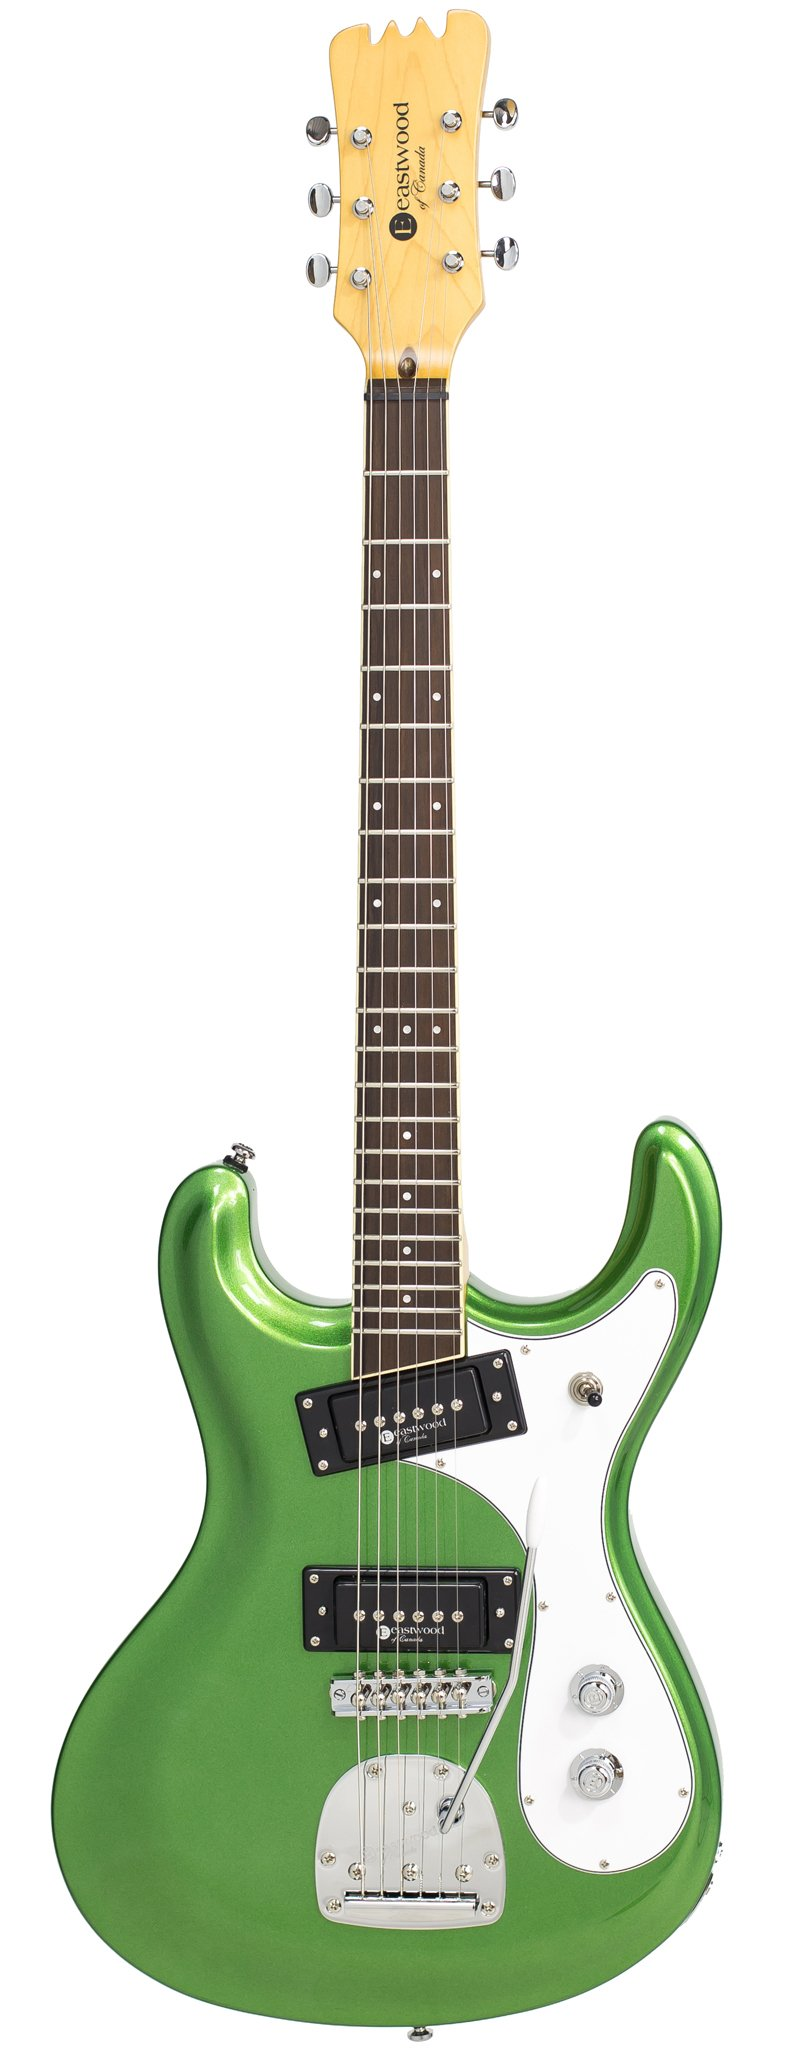 Eastwood Guitars Sidejack PRO DLX Candy Green Full Front